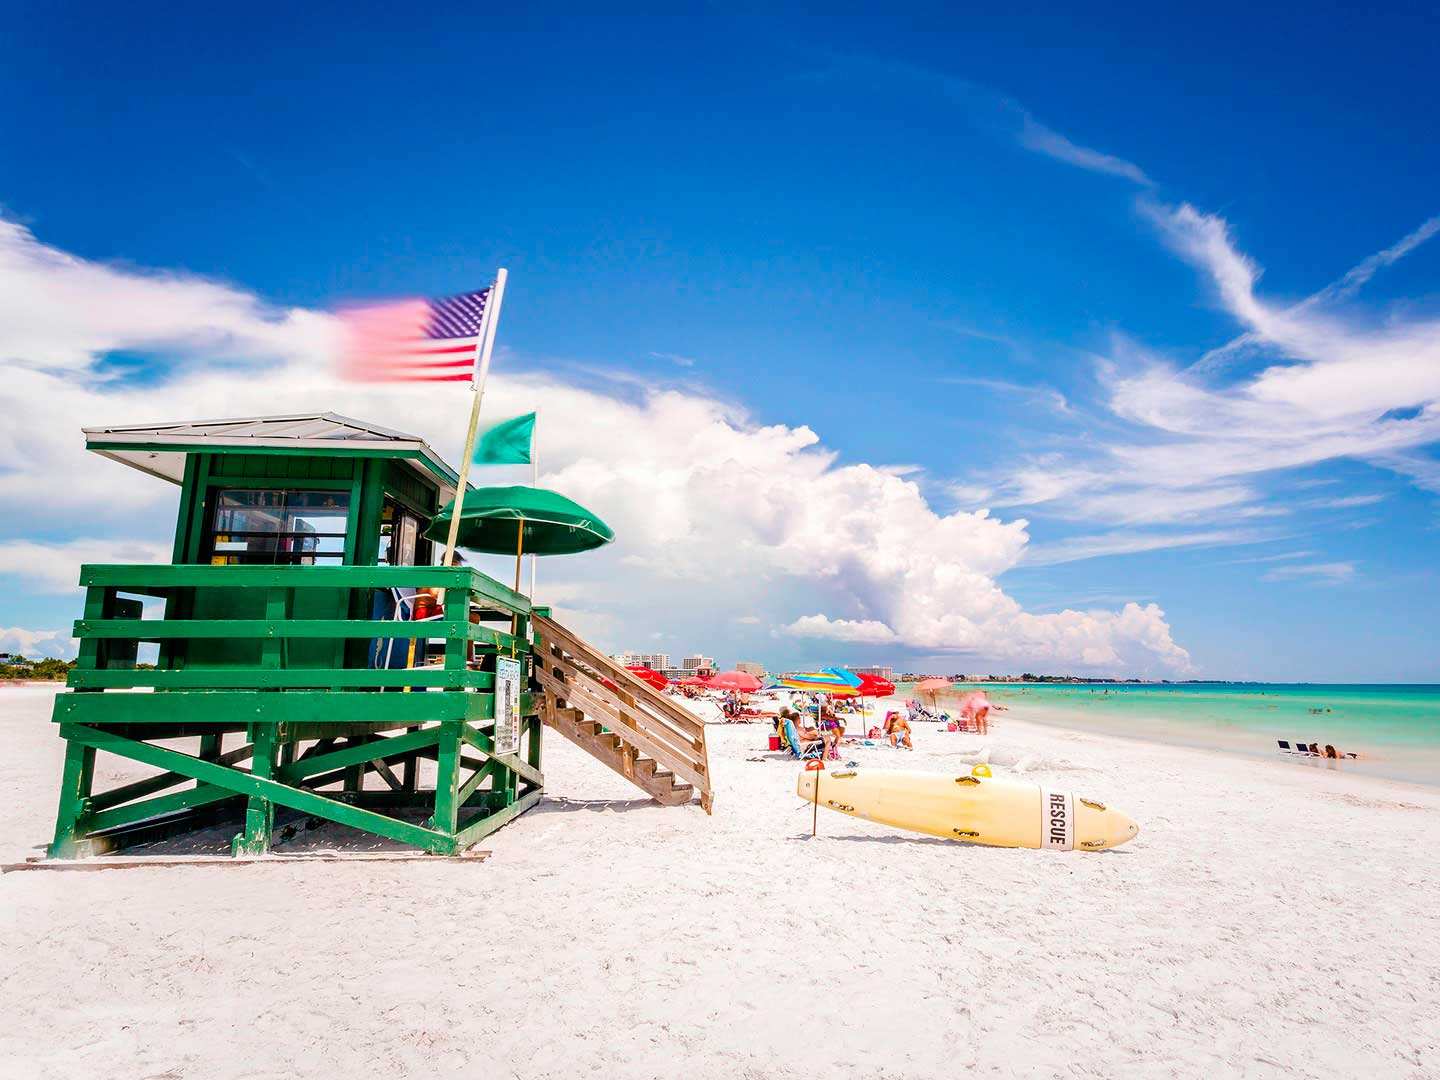 Crédito foto: http://www.cntraveler.com/galleries/2016-03-28/the-10-best-beaches-in-florida/5